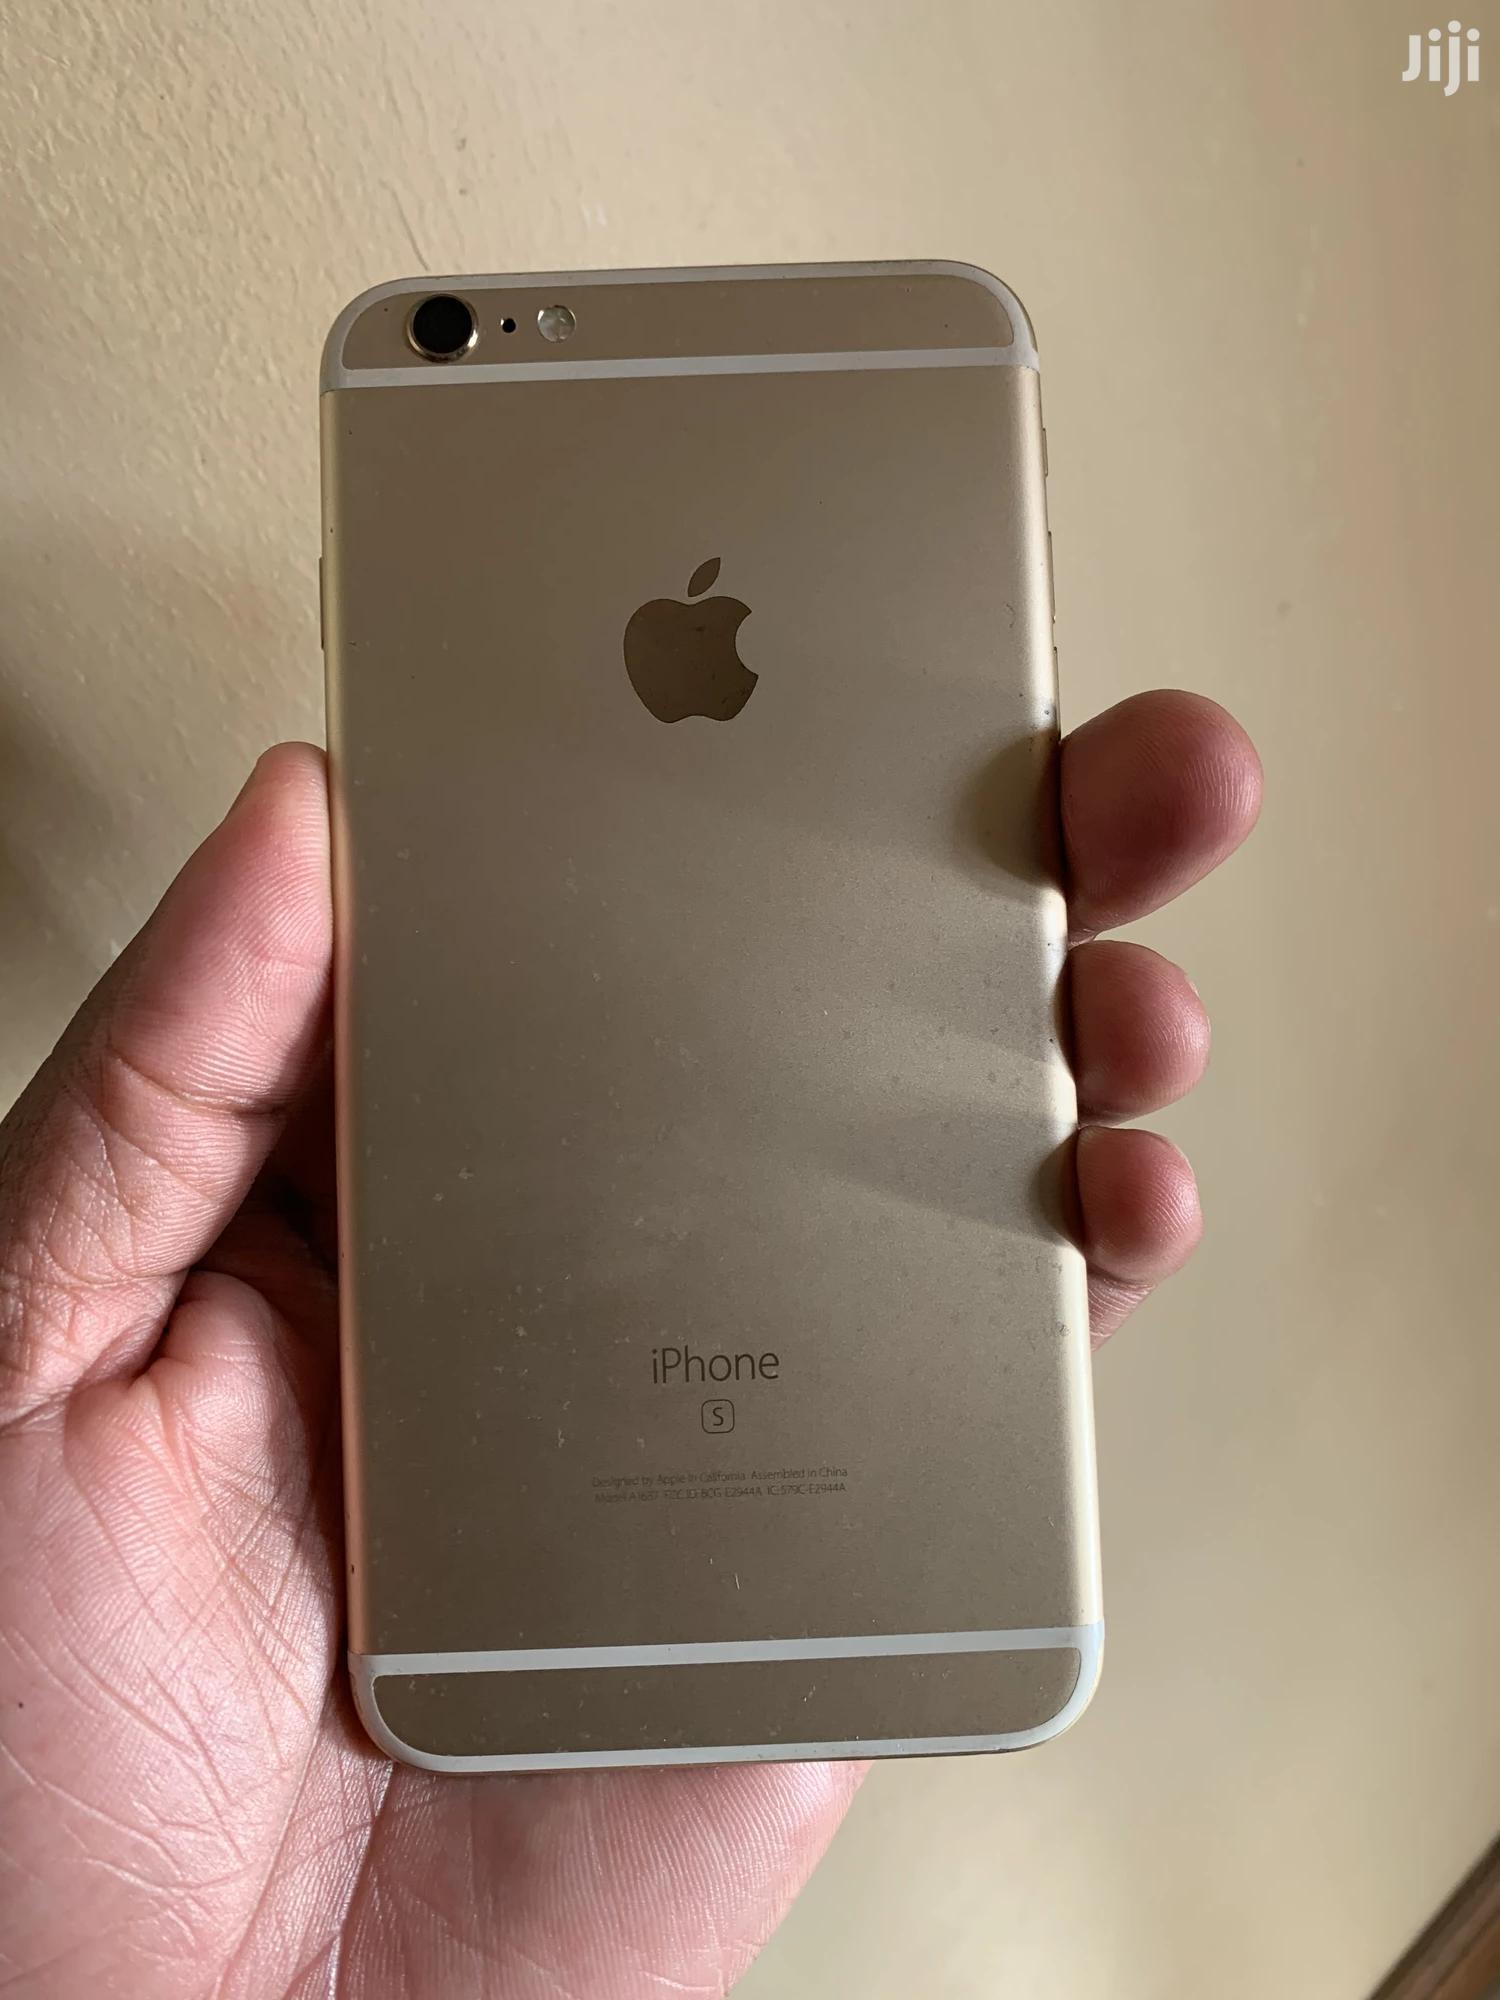 Apple iPhone 6 Plus 128 GB Gold | Mobile Phones for sale in Kampala, Central Region, Uganda